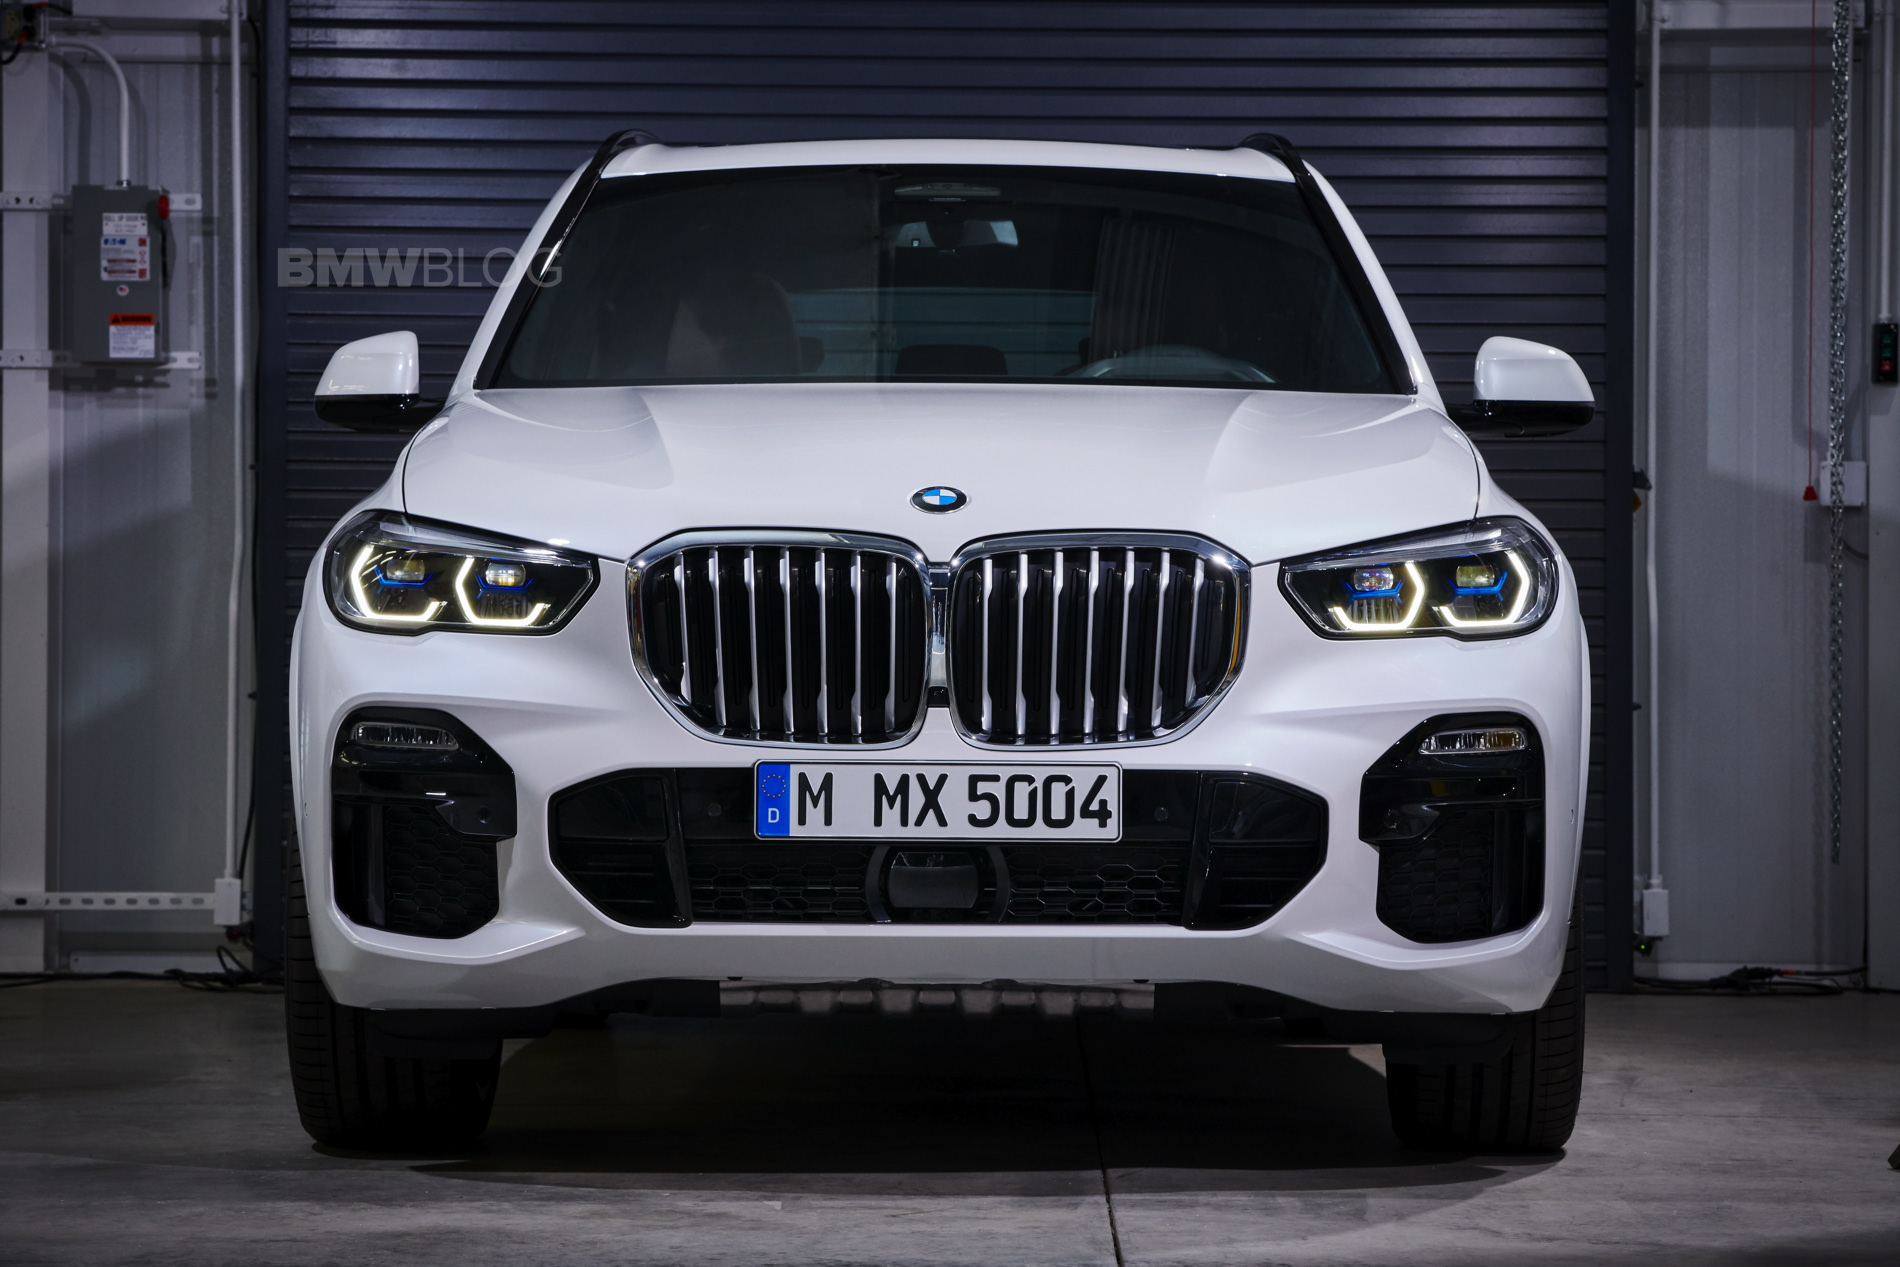 New BMW X5 real life images 06